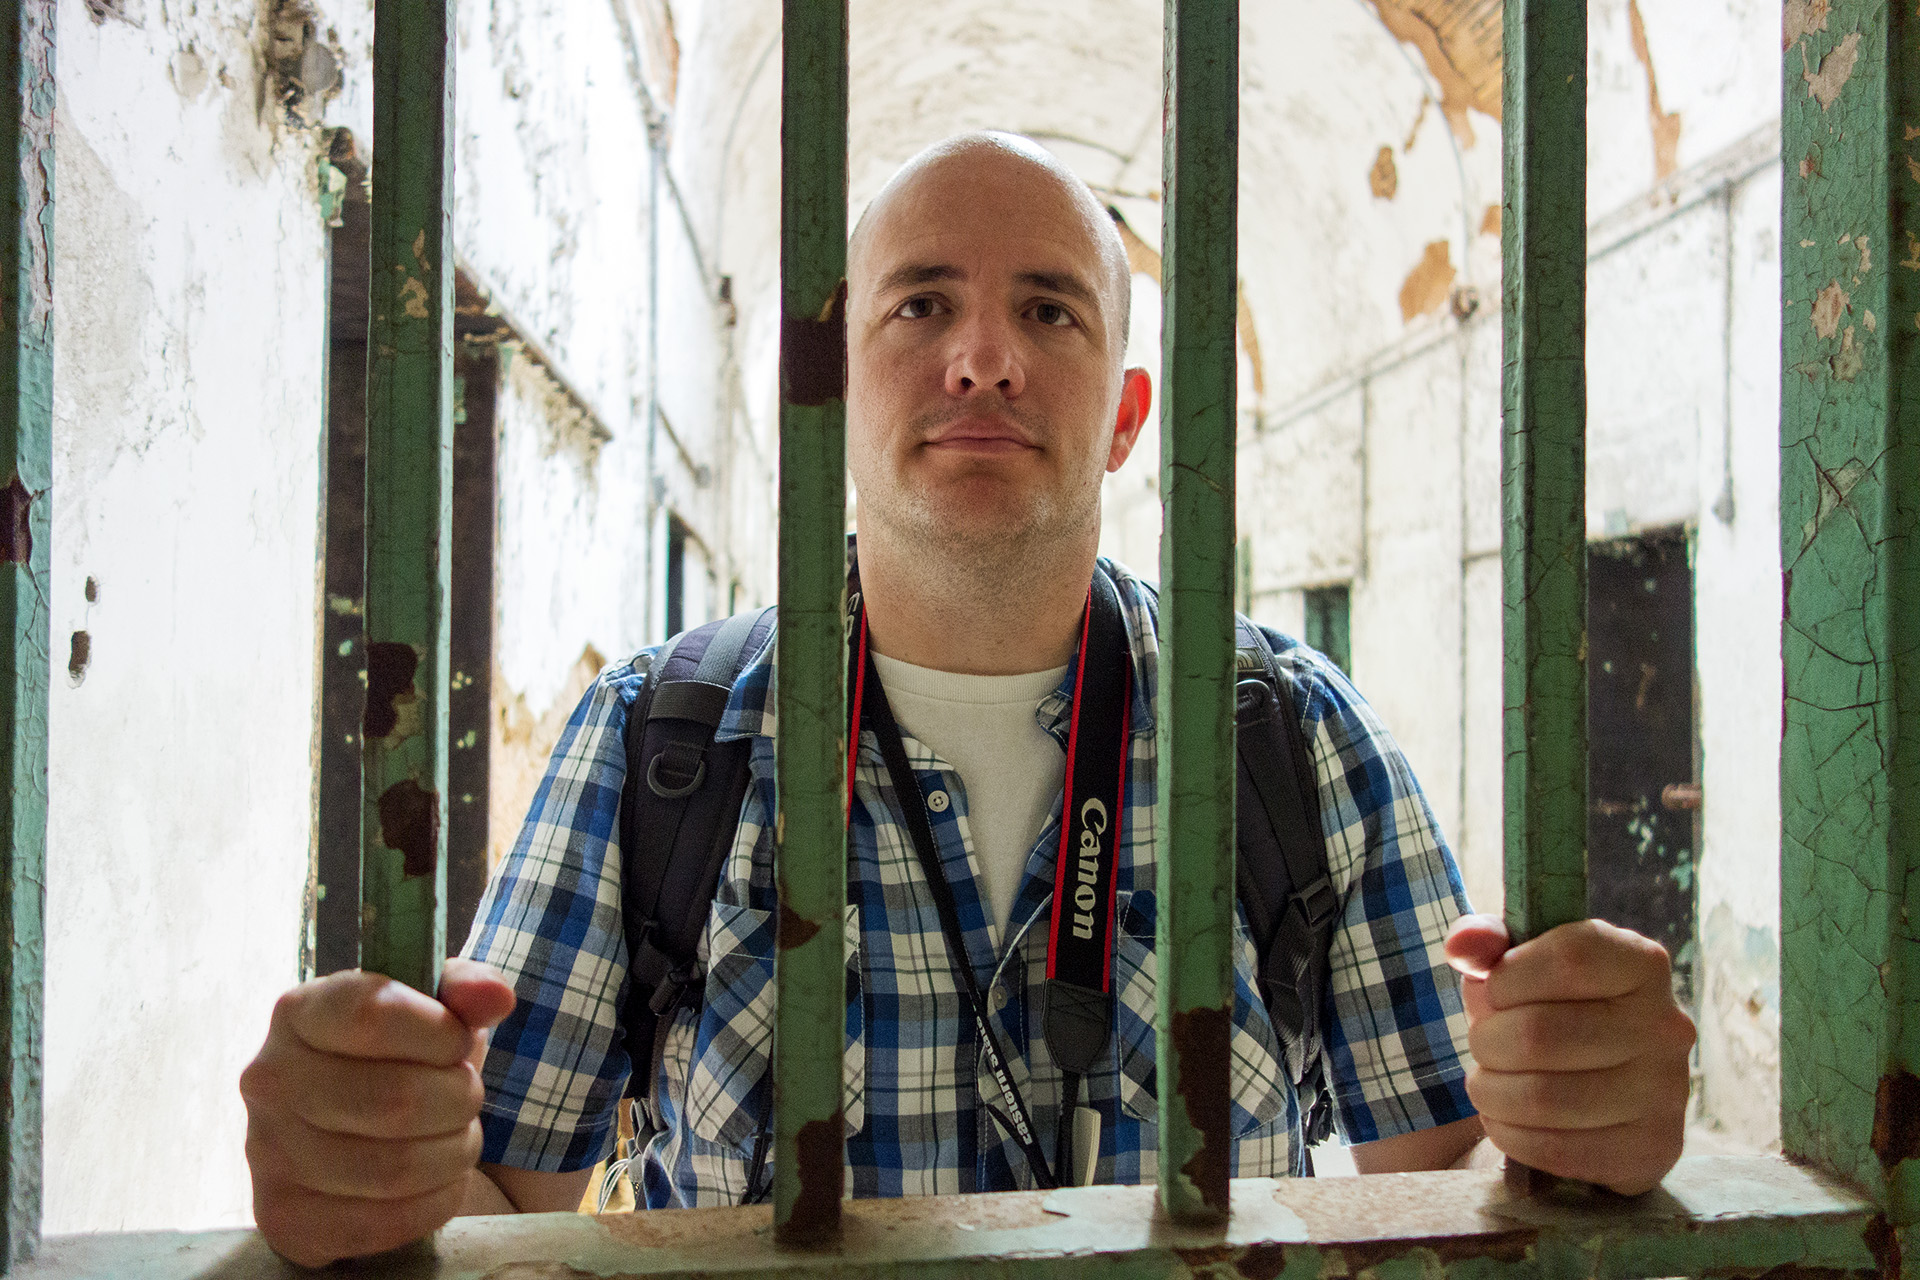 Maynard locked up at Eastern State Penitentiary.